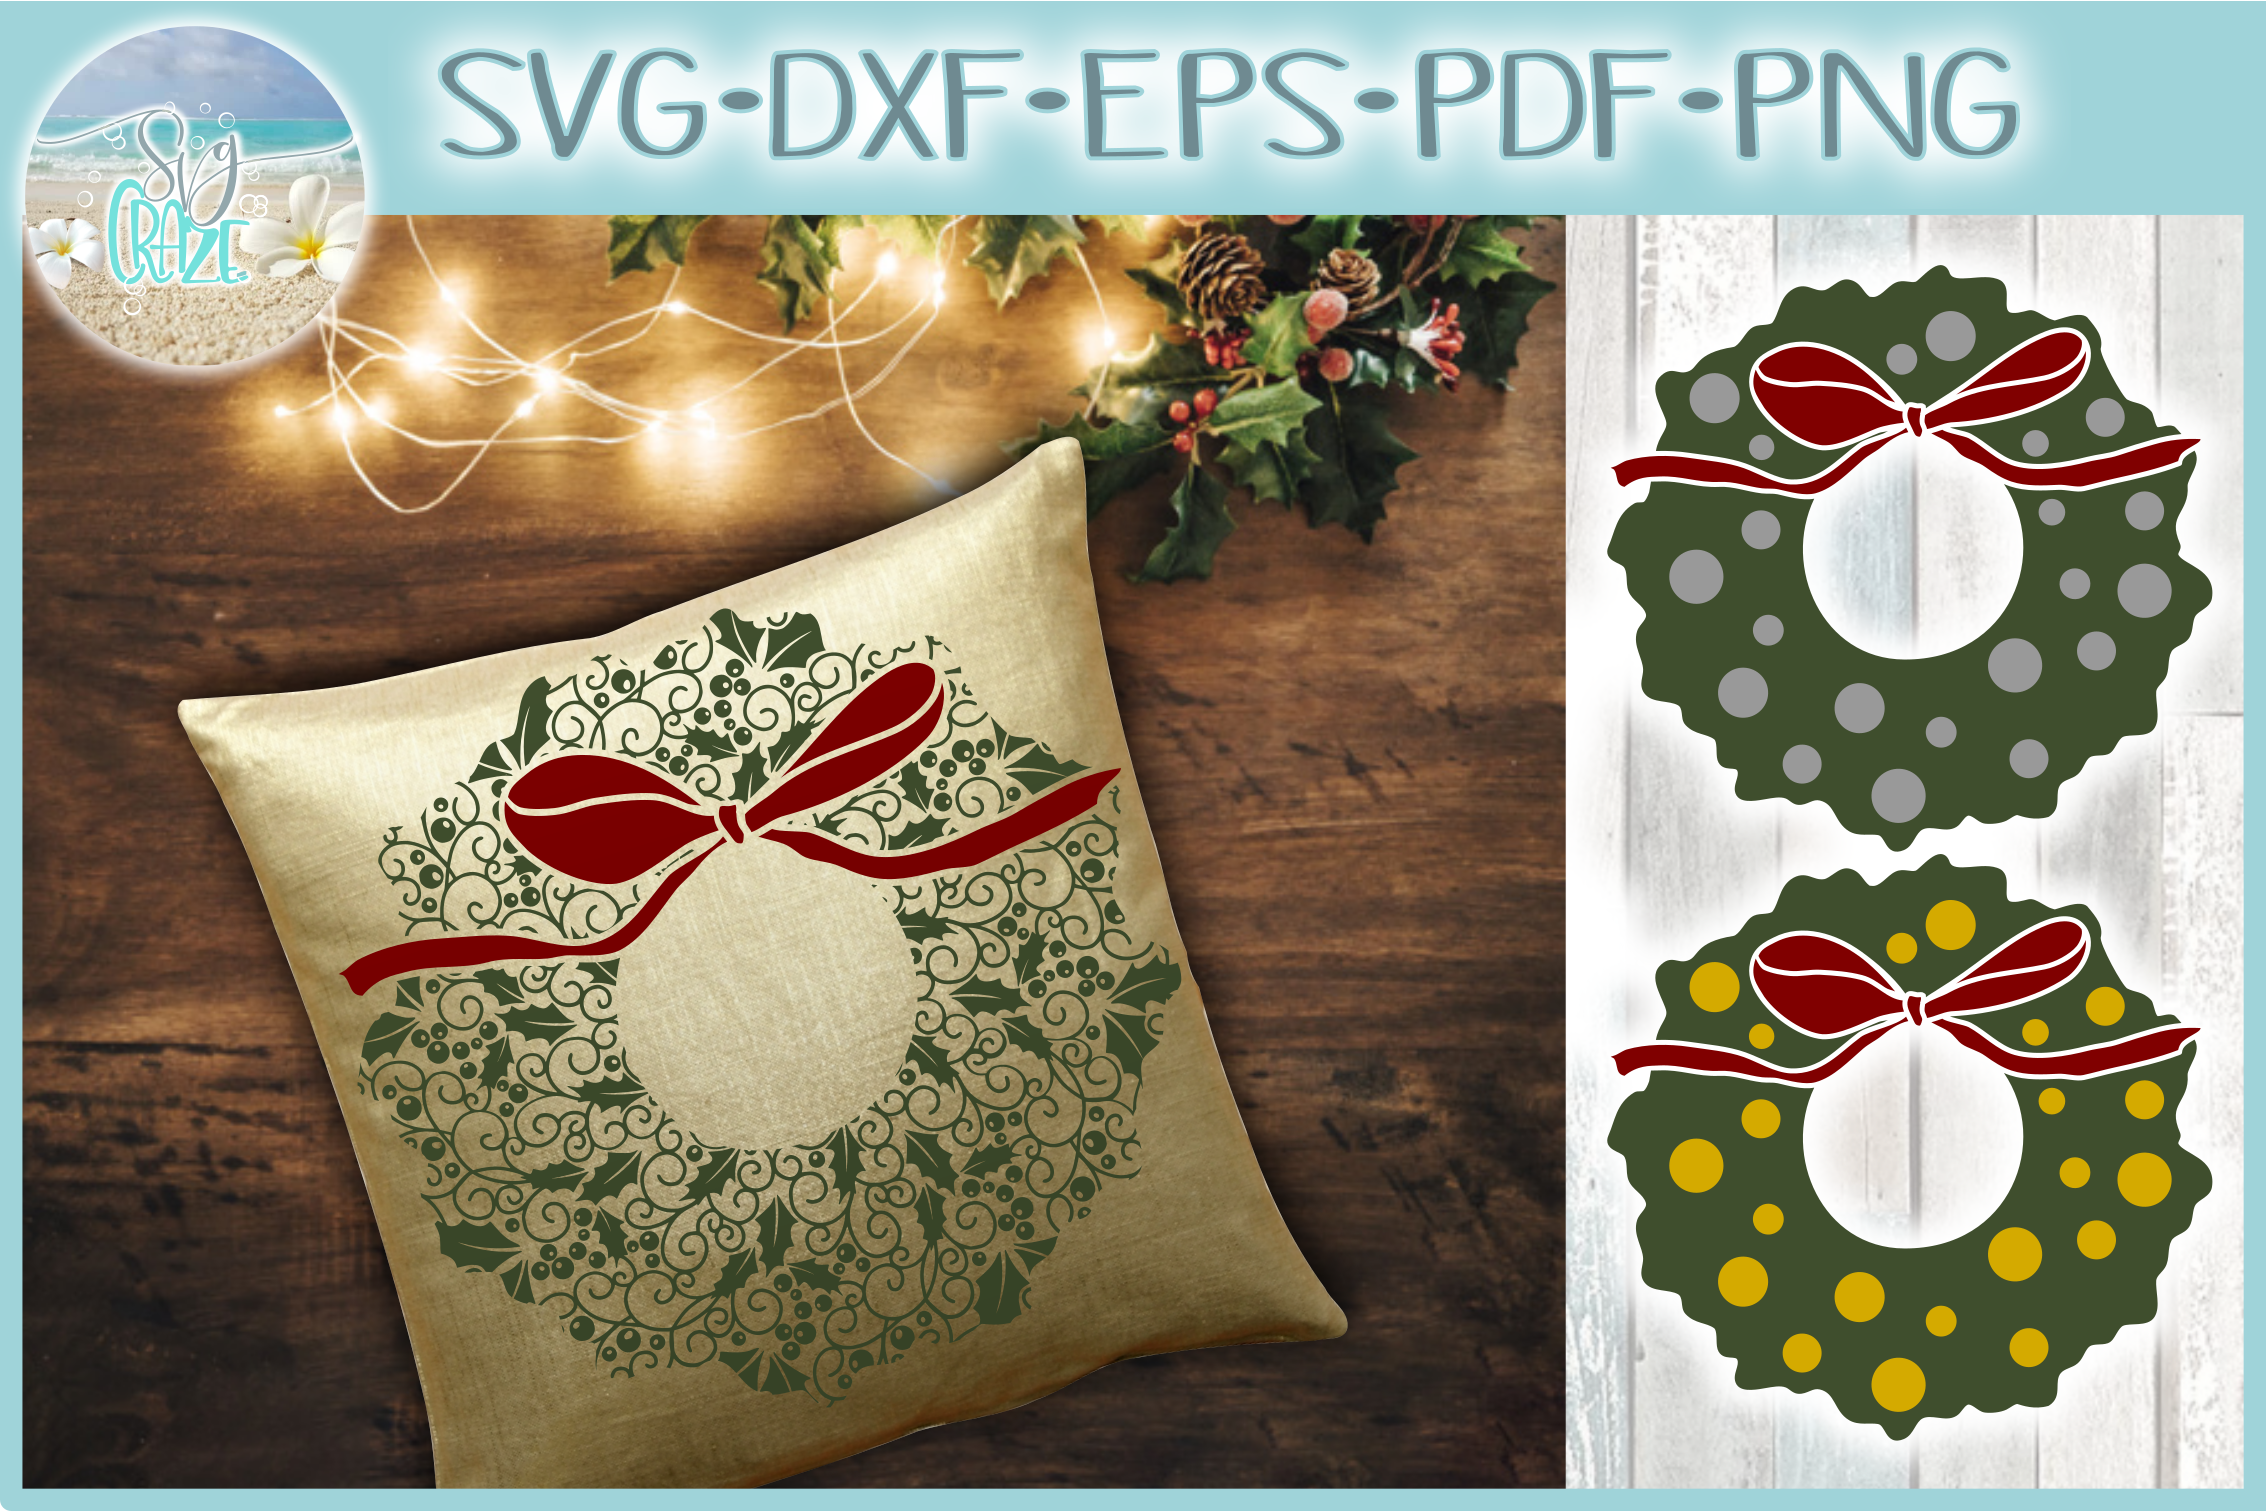 Christmas Wreath with Bow Mandala SVG Dxf Eps Png PDF files example image 1